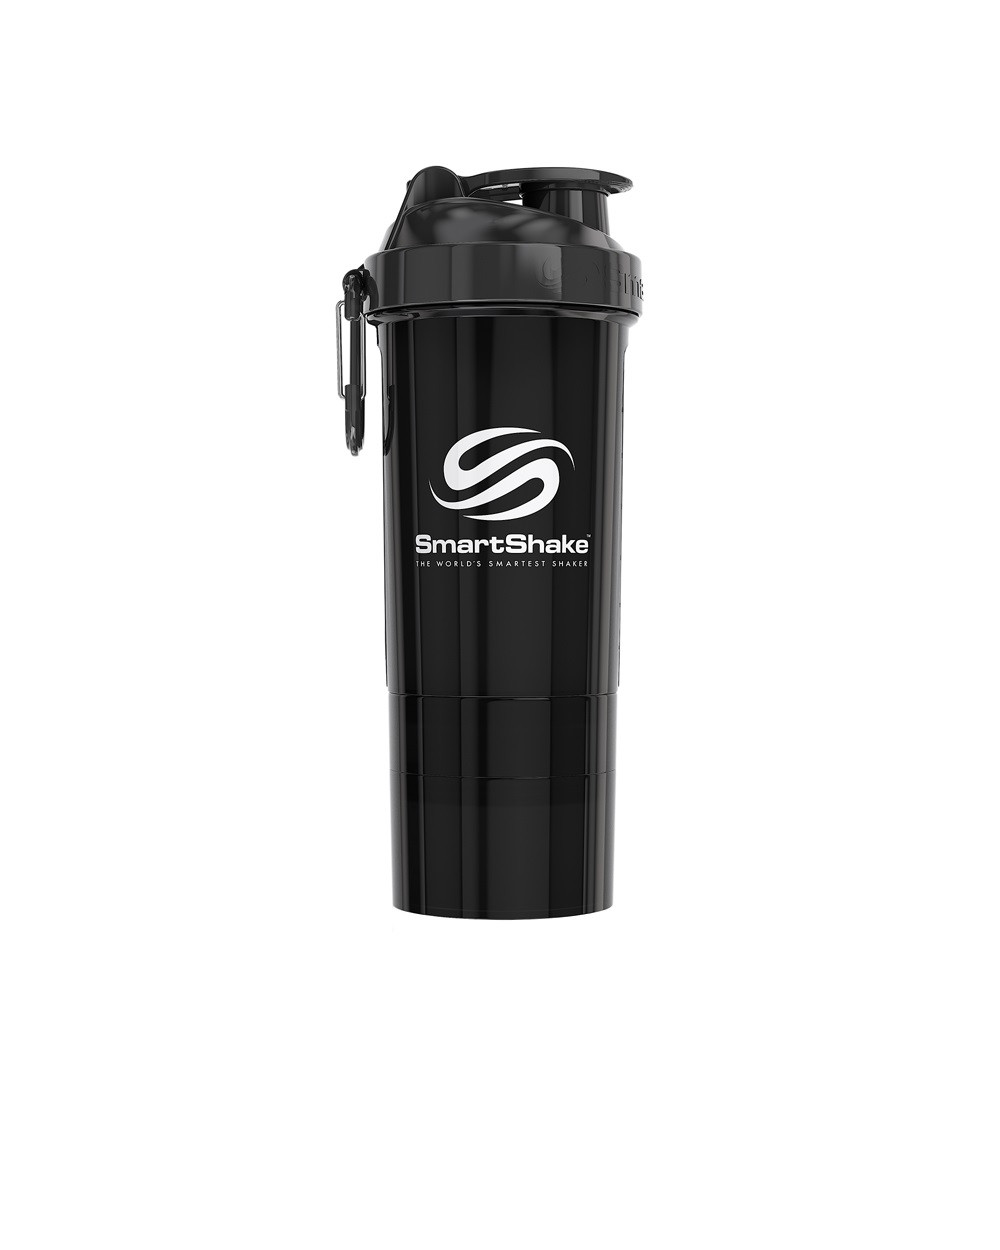 http://d3d71ba2asa5oz.cloudfront.net/23000296/images/smartshake-original2go-600ml-gunsmoke-black-4.jpg